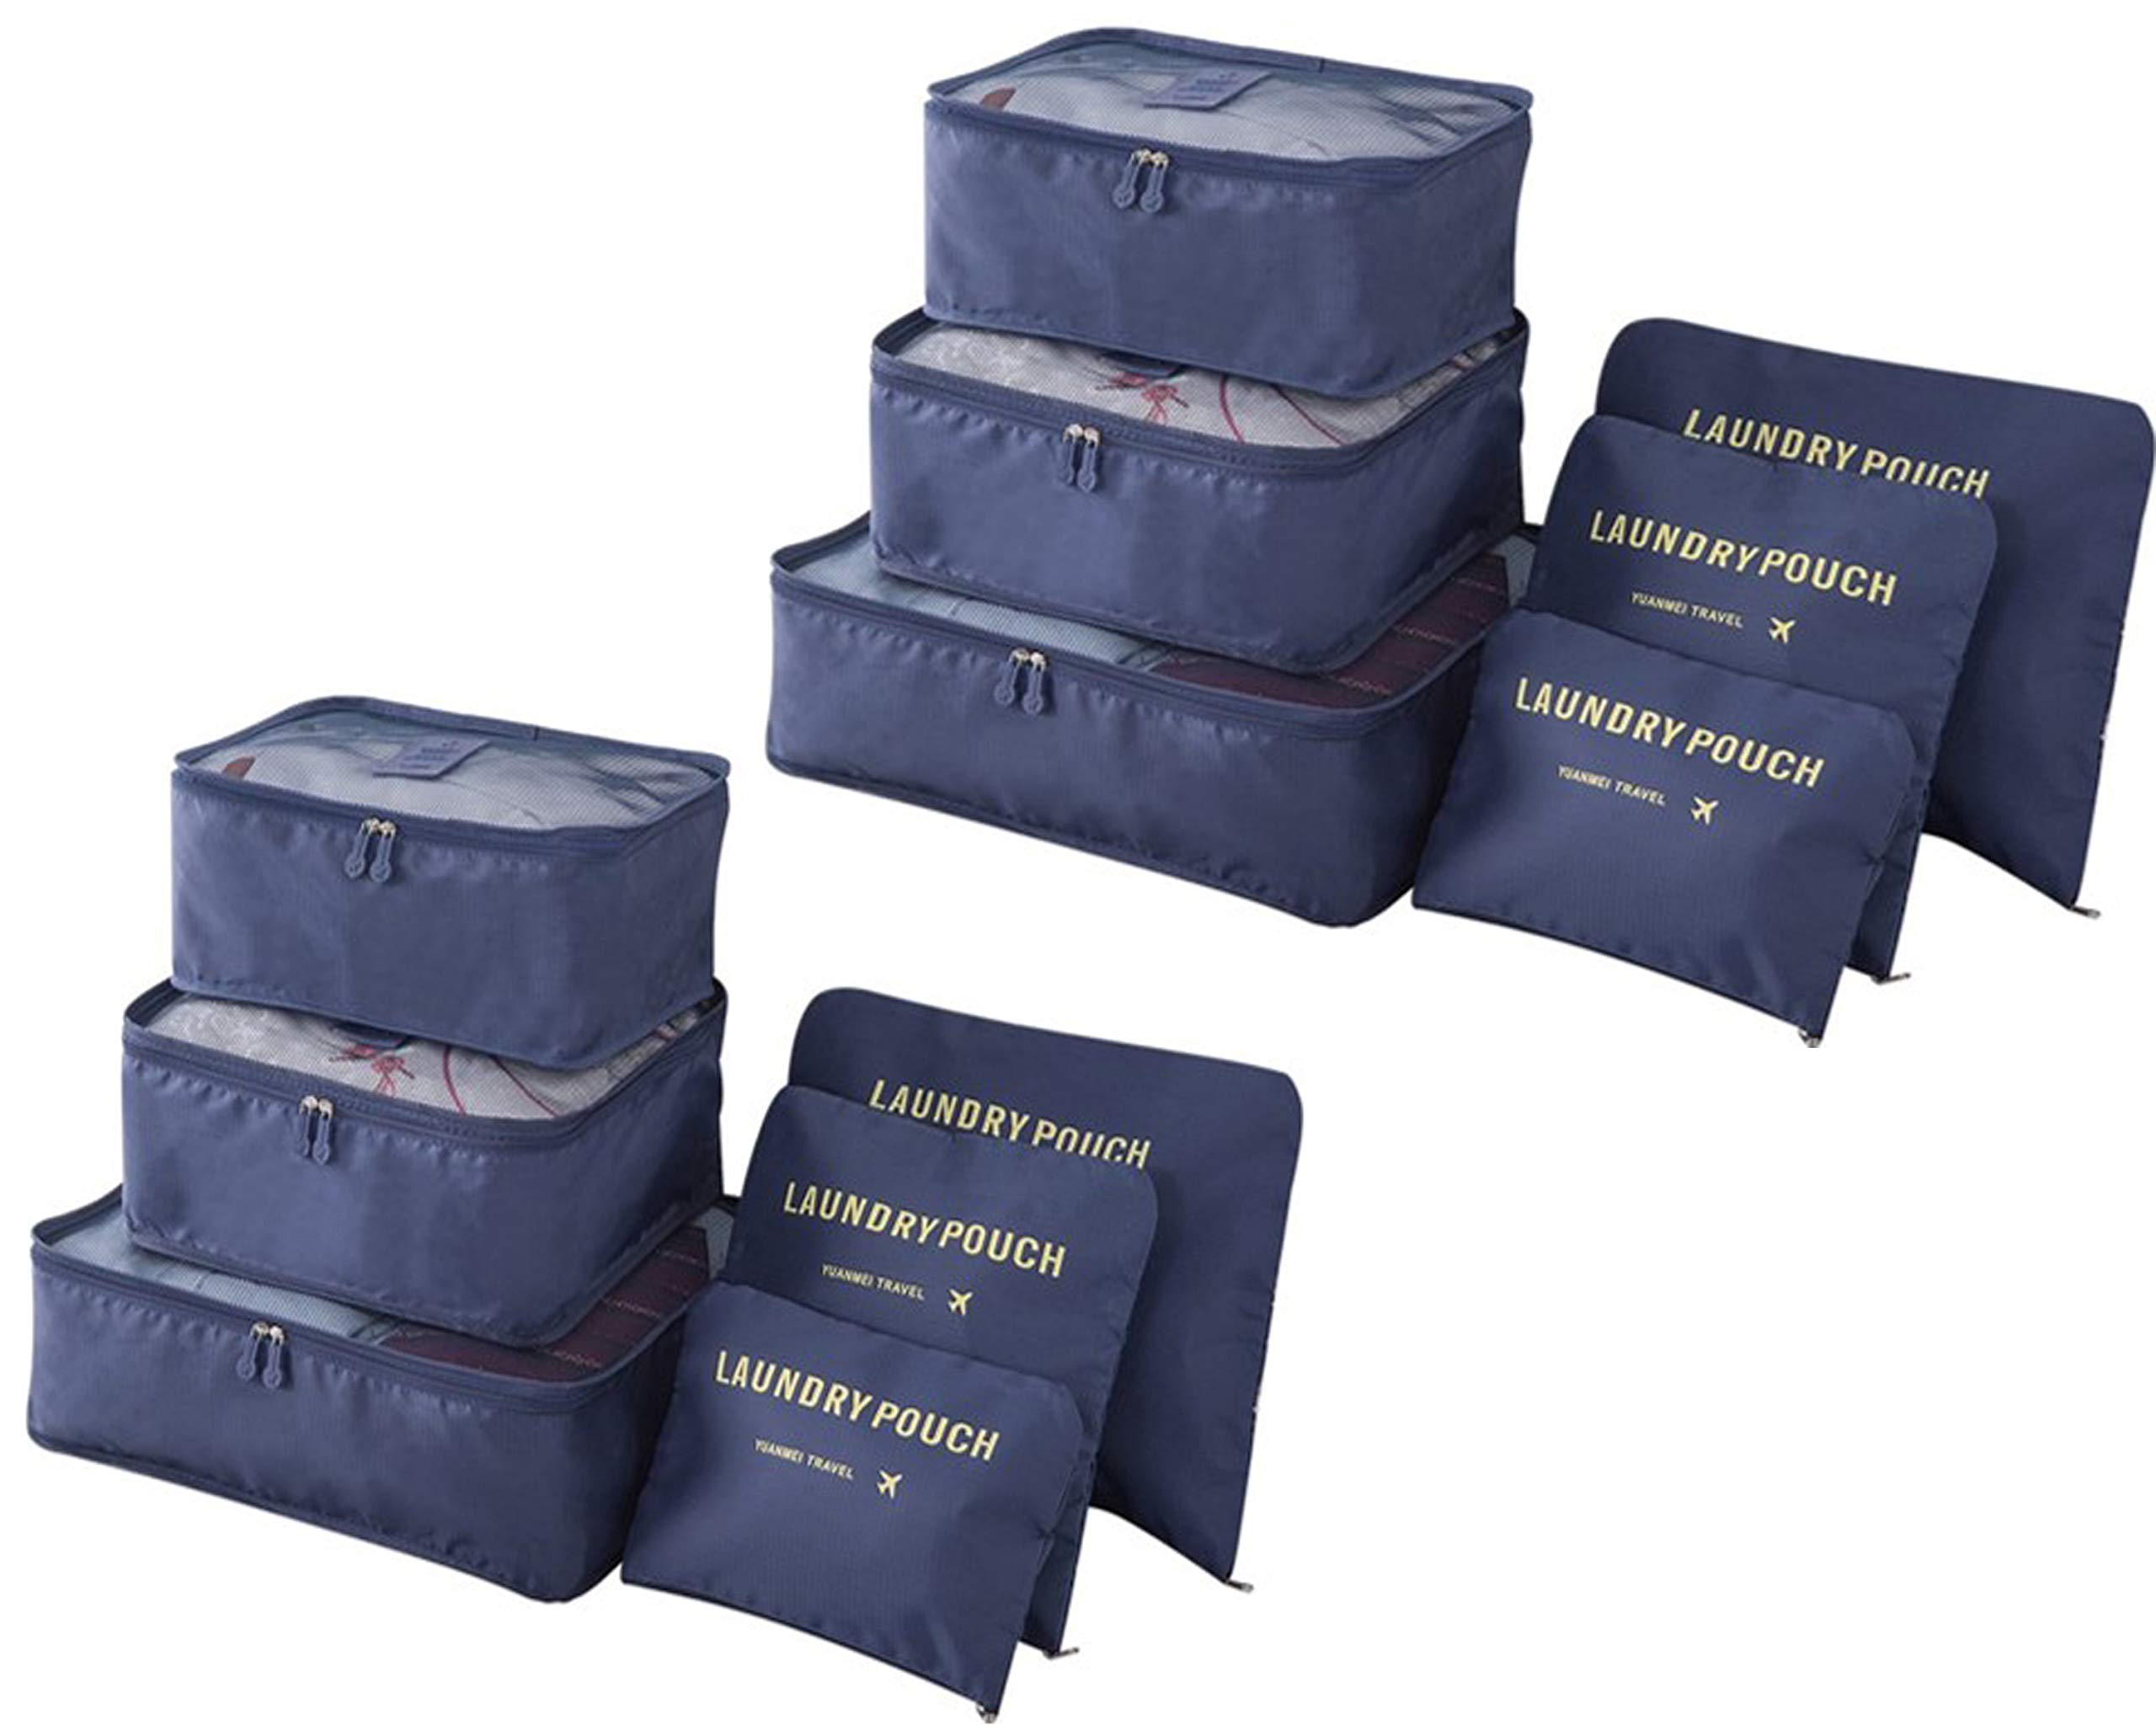 Packing Cubes (2 Sets /12 Pieces) Luggage Organizers/Laundry Bags JuneBugz Travel Accessory for Suitcases,Carry-on,BackPacks-Organize Toiletries/Clothing/Medicine/Shoes/Passport/Document(Navy/Navy) by JuneBugz Enterprises (Image #1)